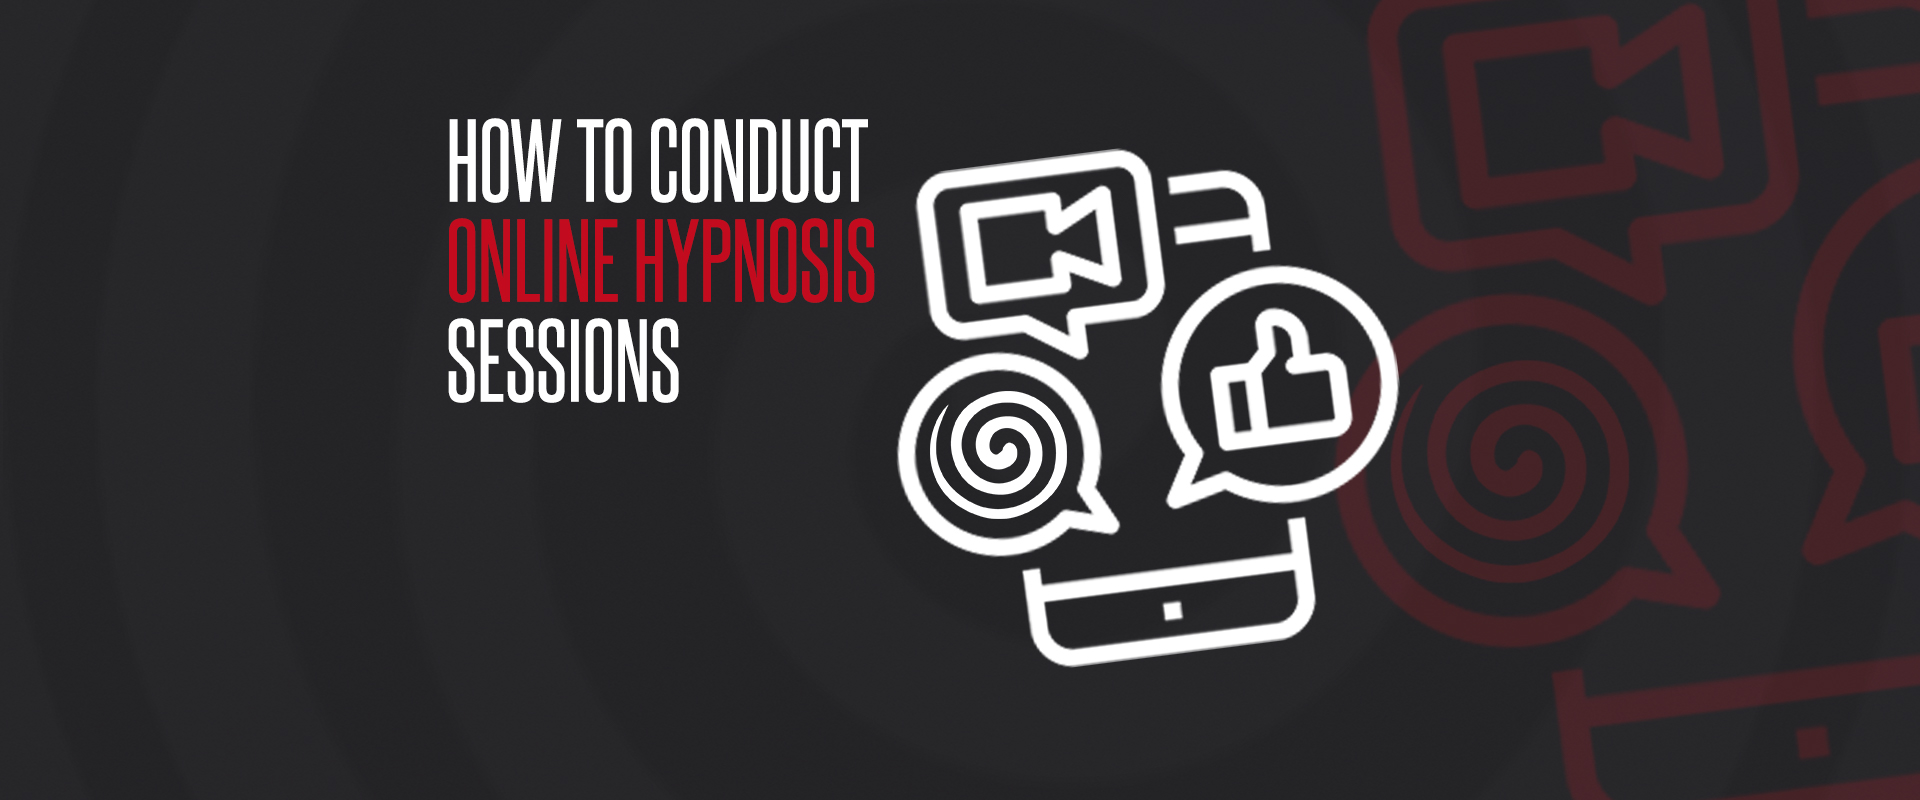 How to conduct online hypnosis sessions banner